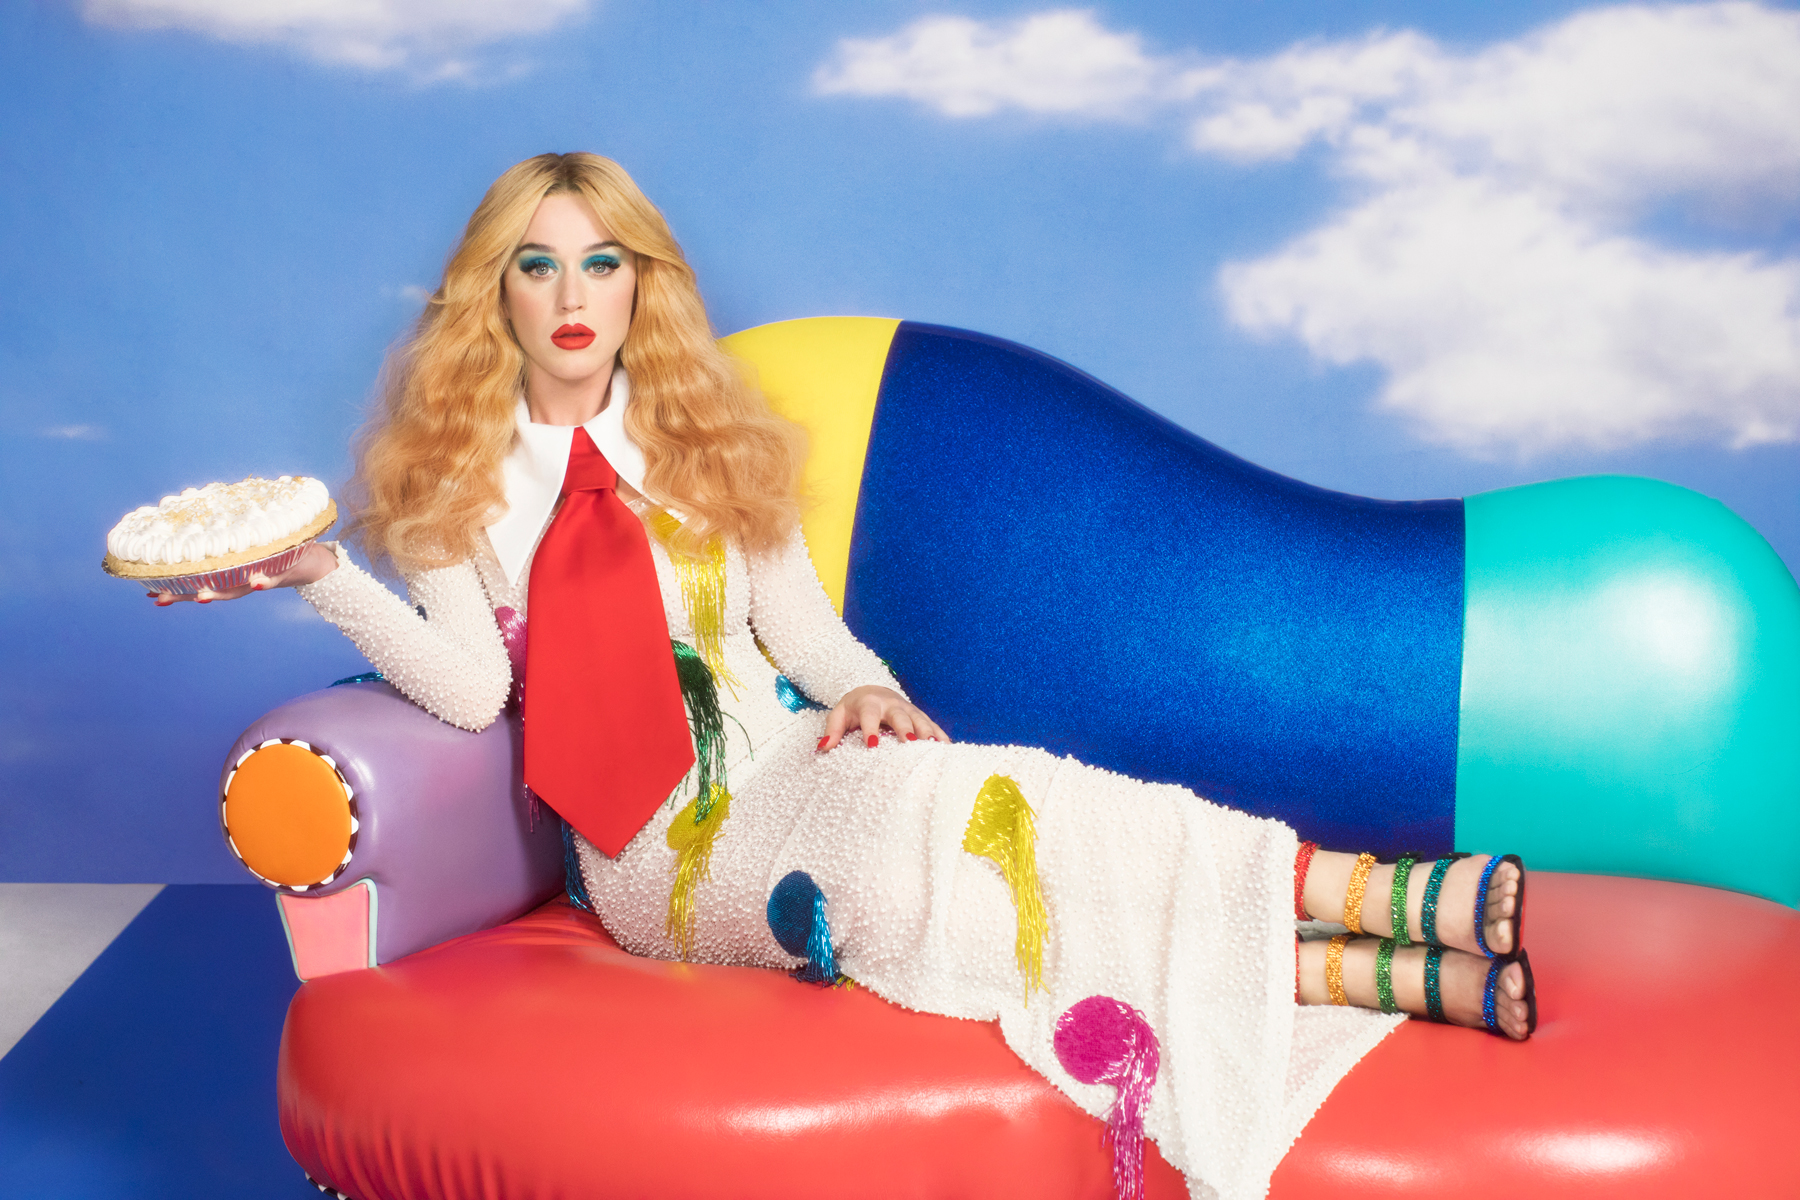 Review: Katy Perry's 'Smile' - Rolling Stone